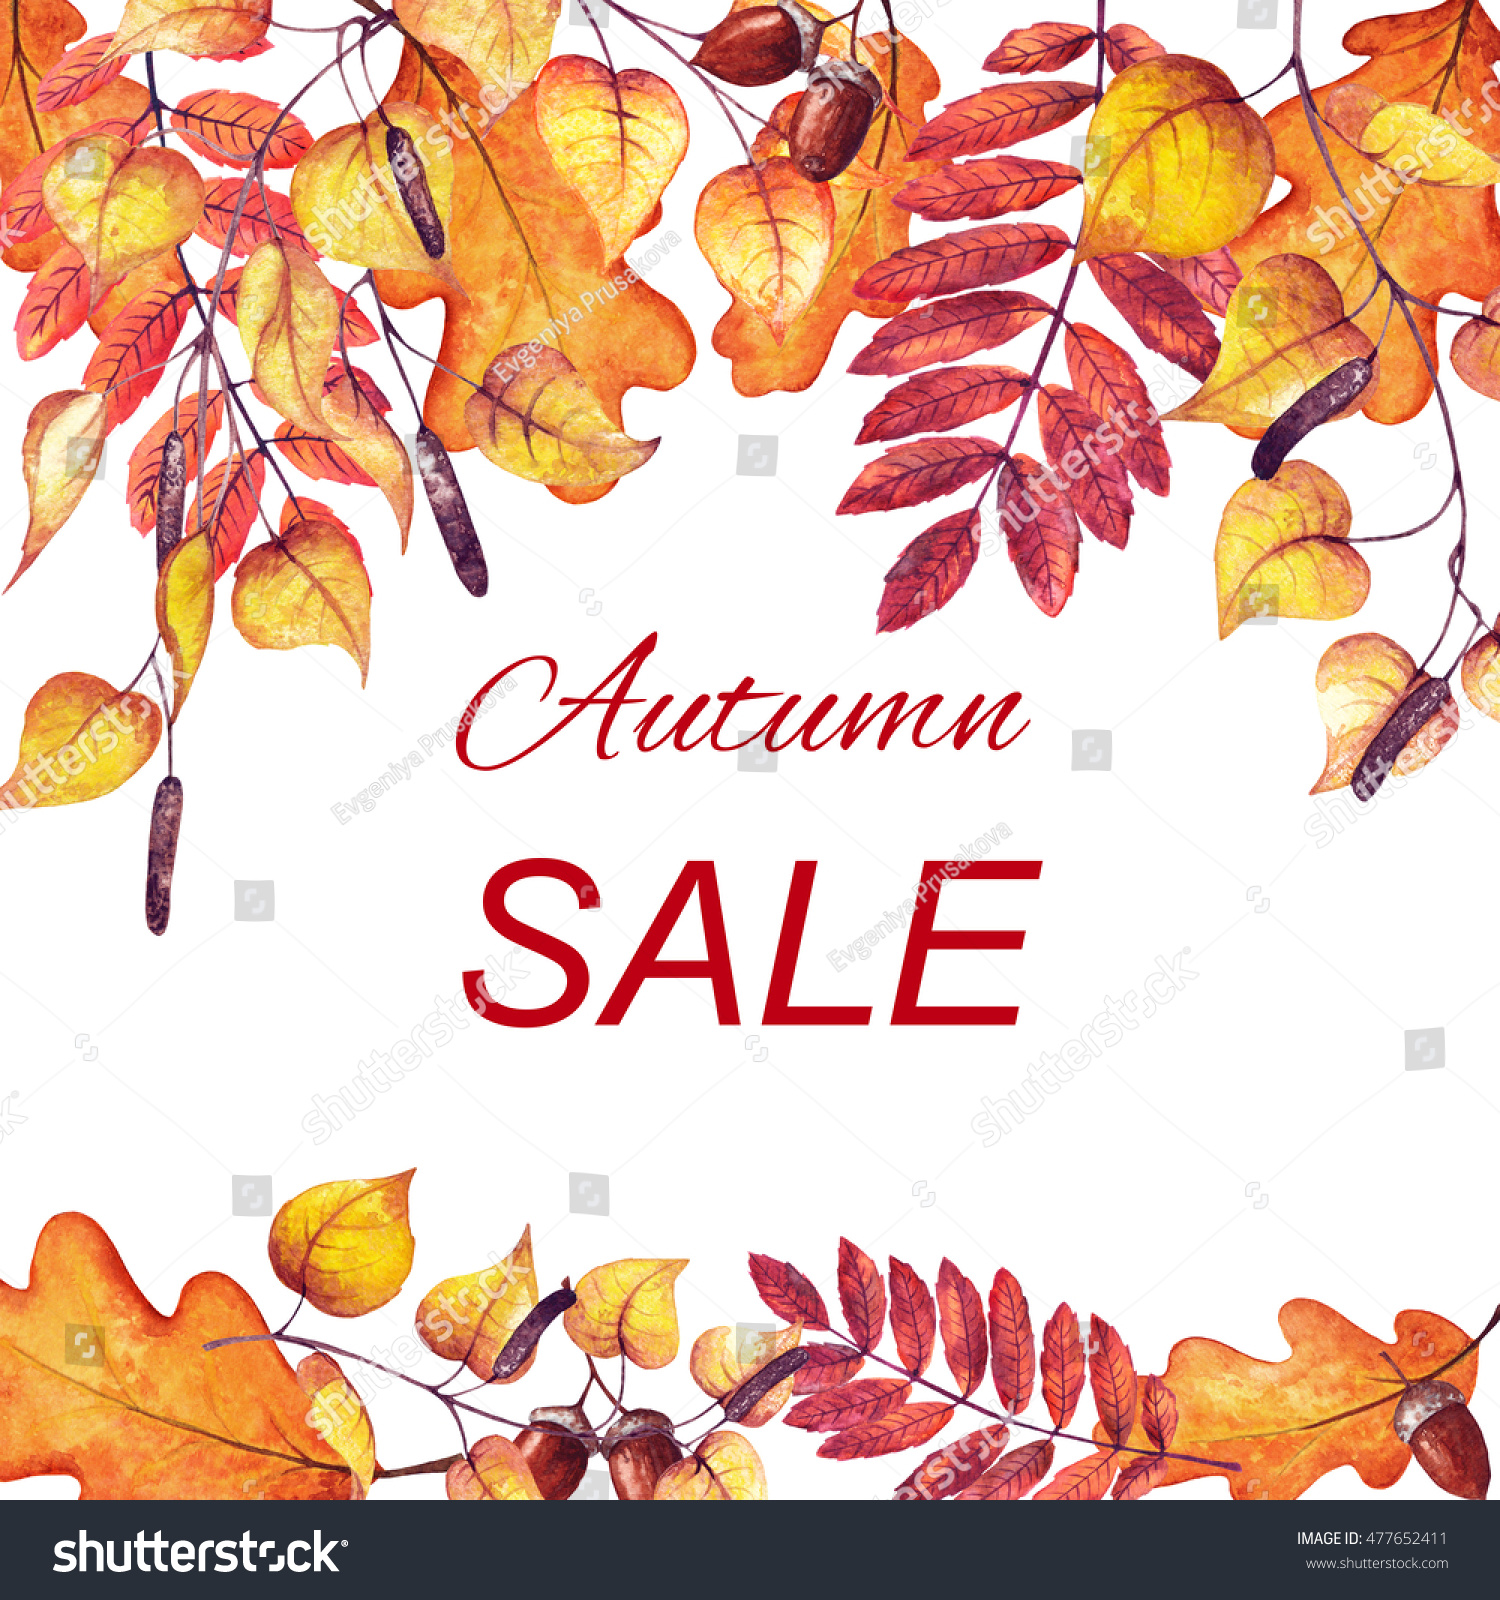 autumn sale banner colorful fall leaves stock illustration 477652411